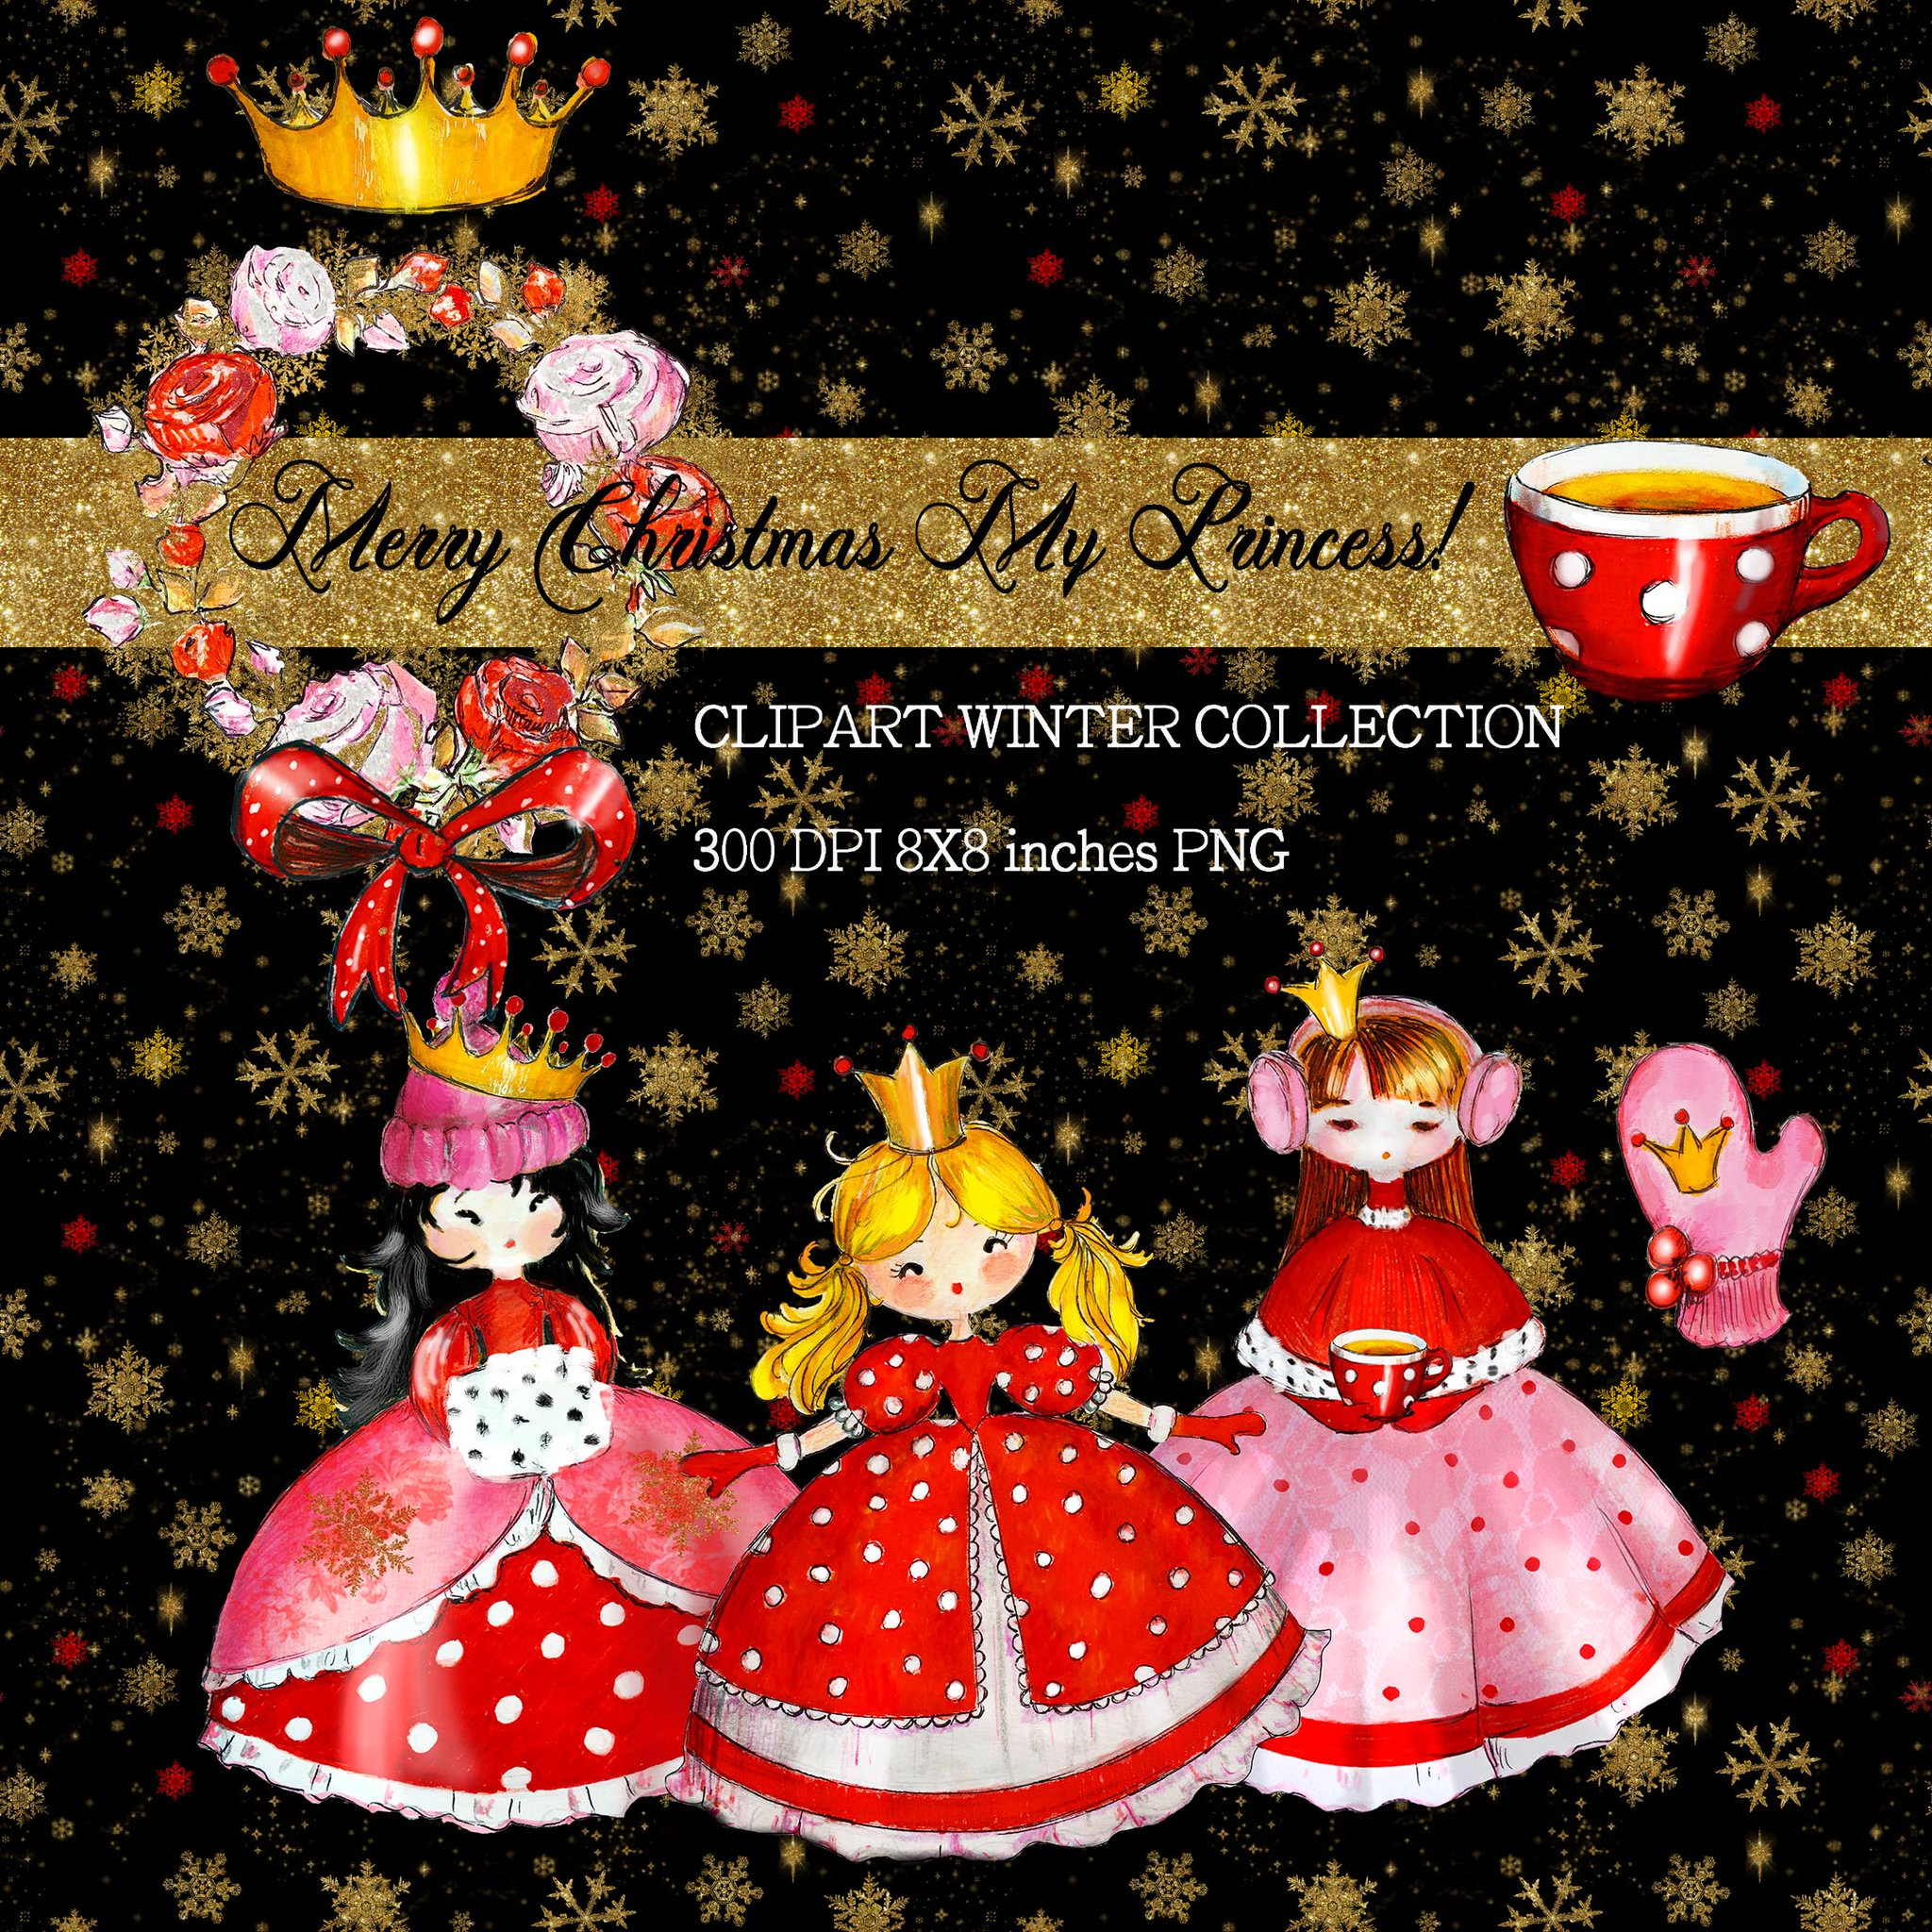 Thepaperheartdesign On Twitter #Christmas #Clipart And Some More Christmas Httpstcoehmp2Fqxk7